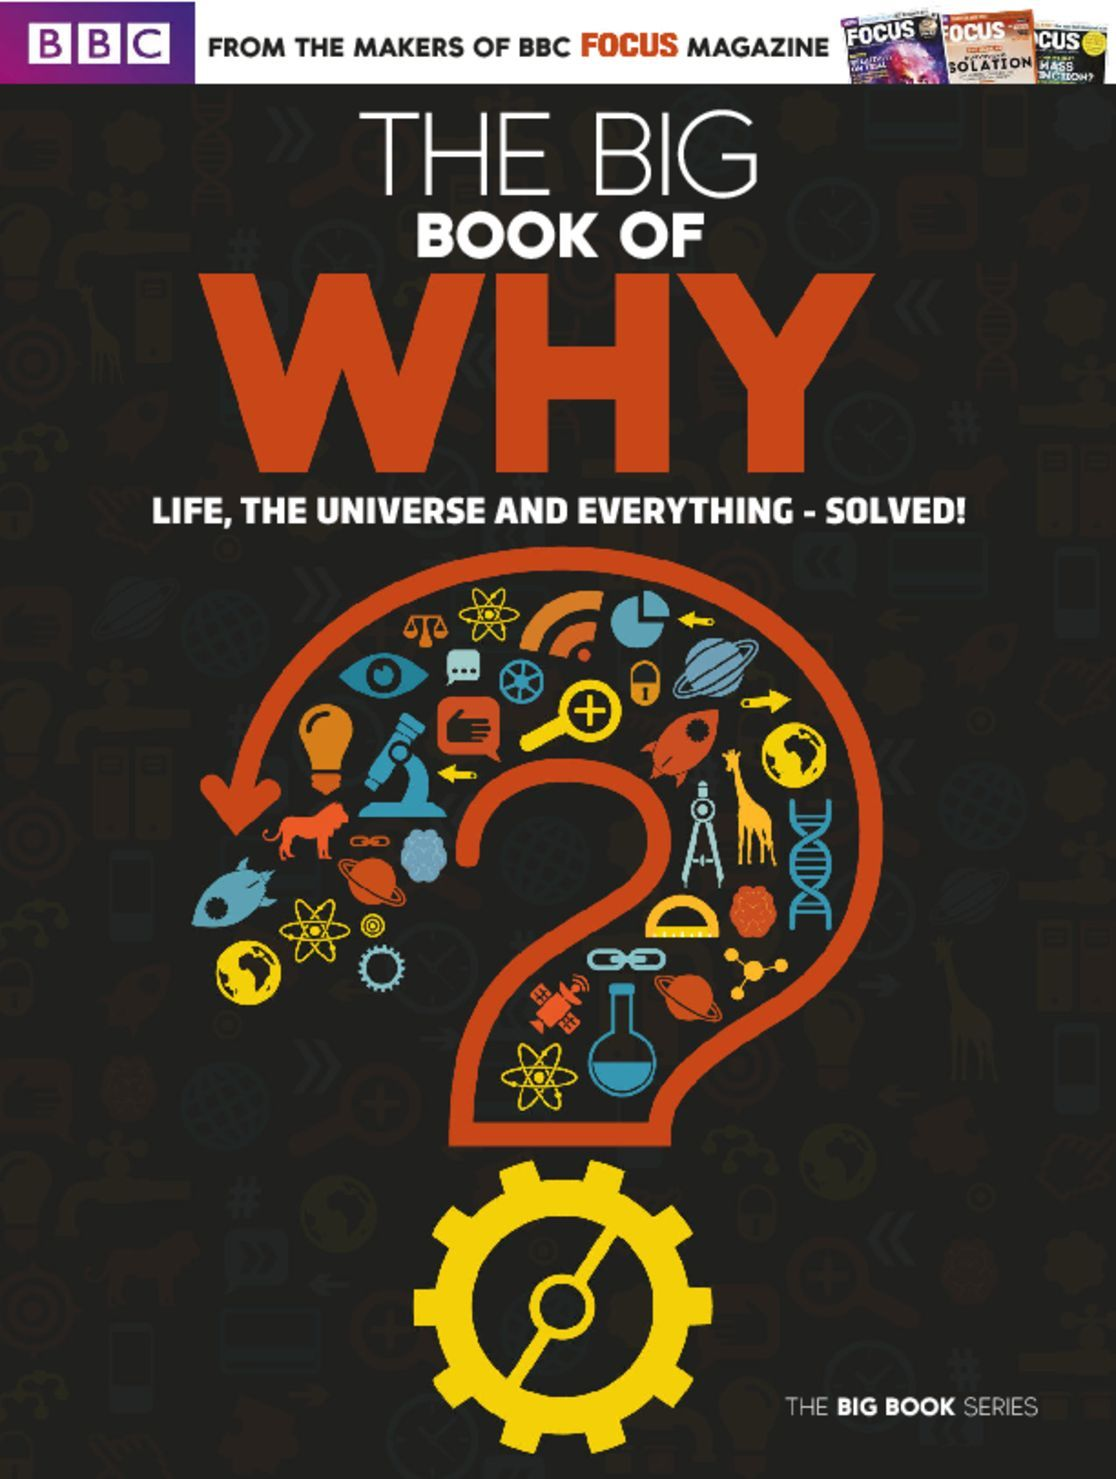 The Big Book of Why Digital